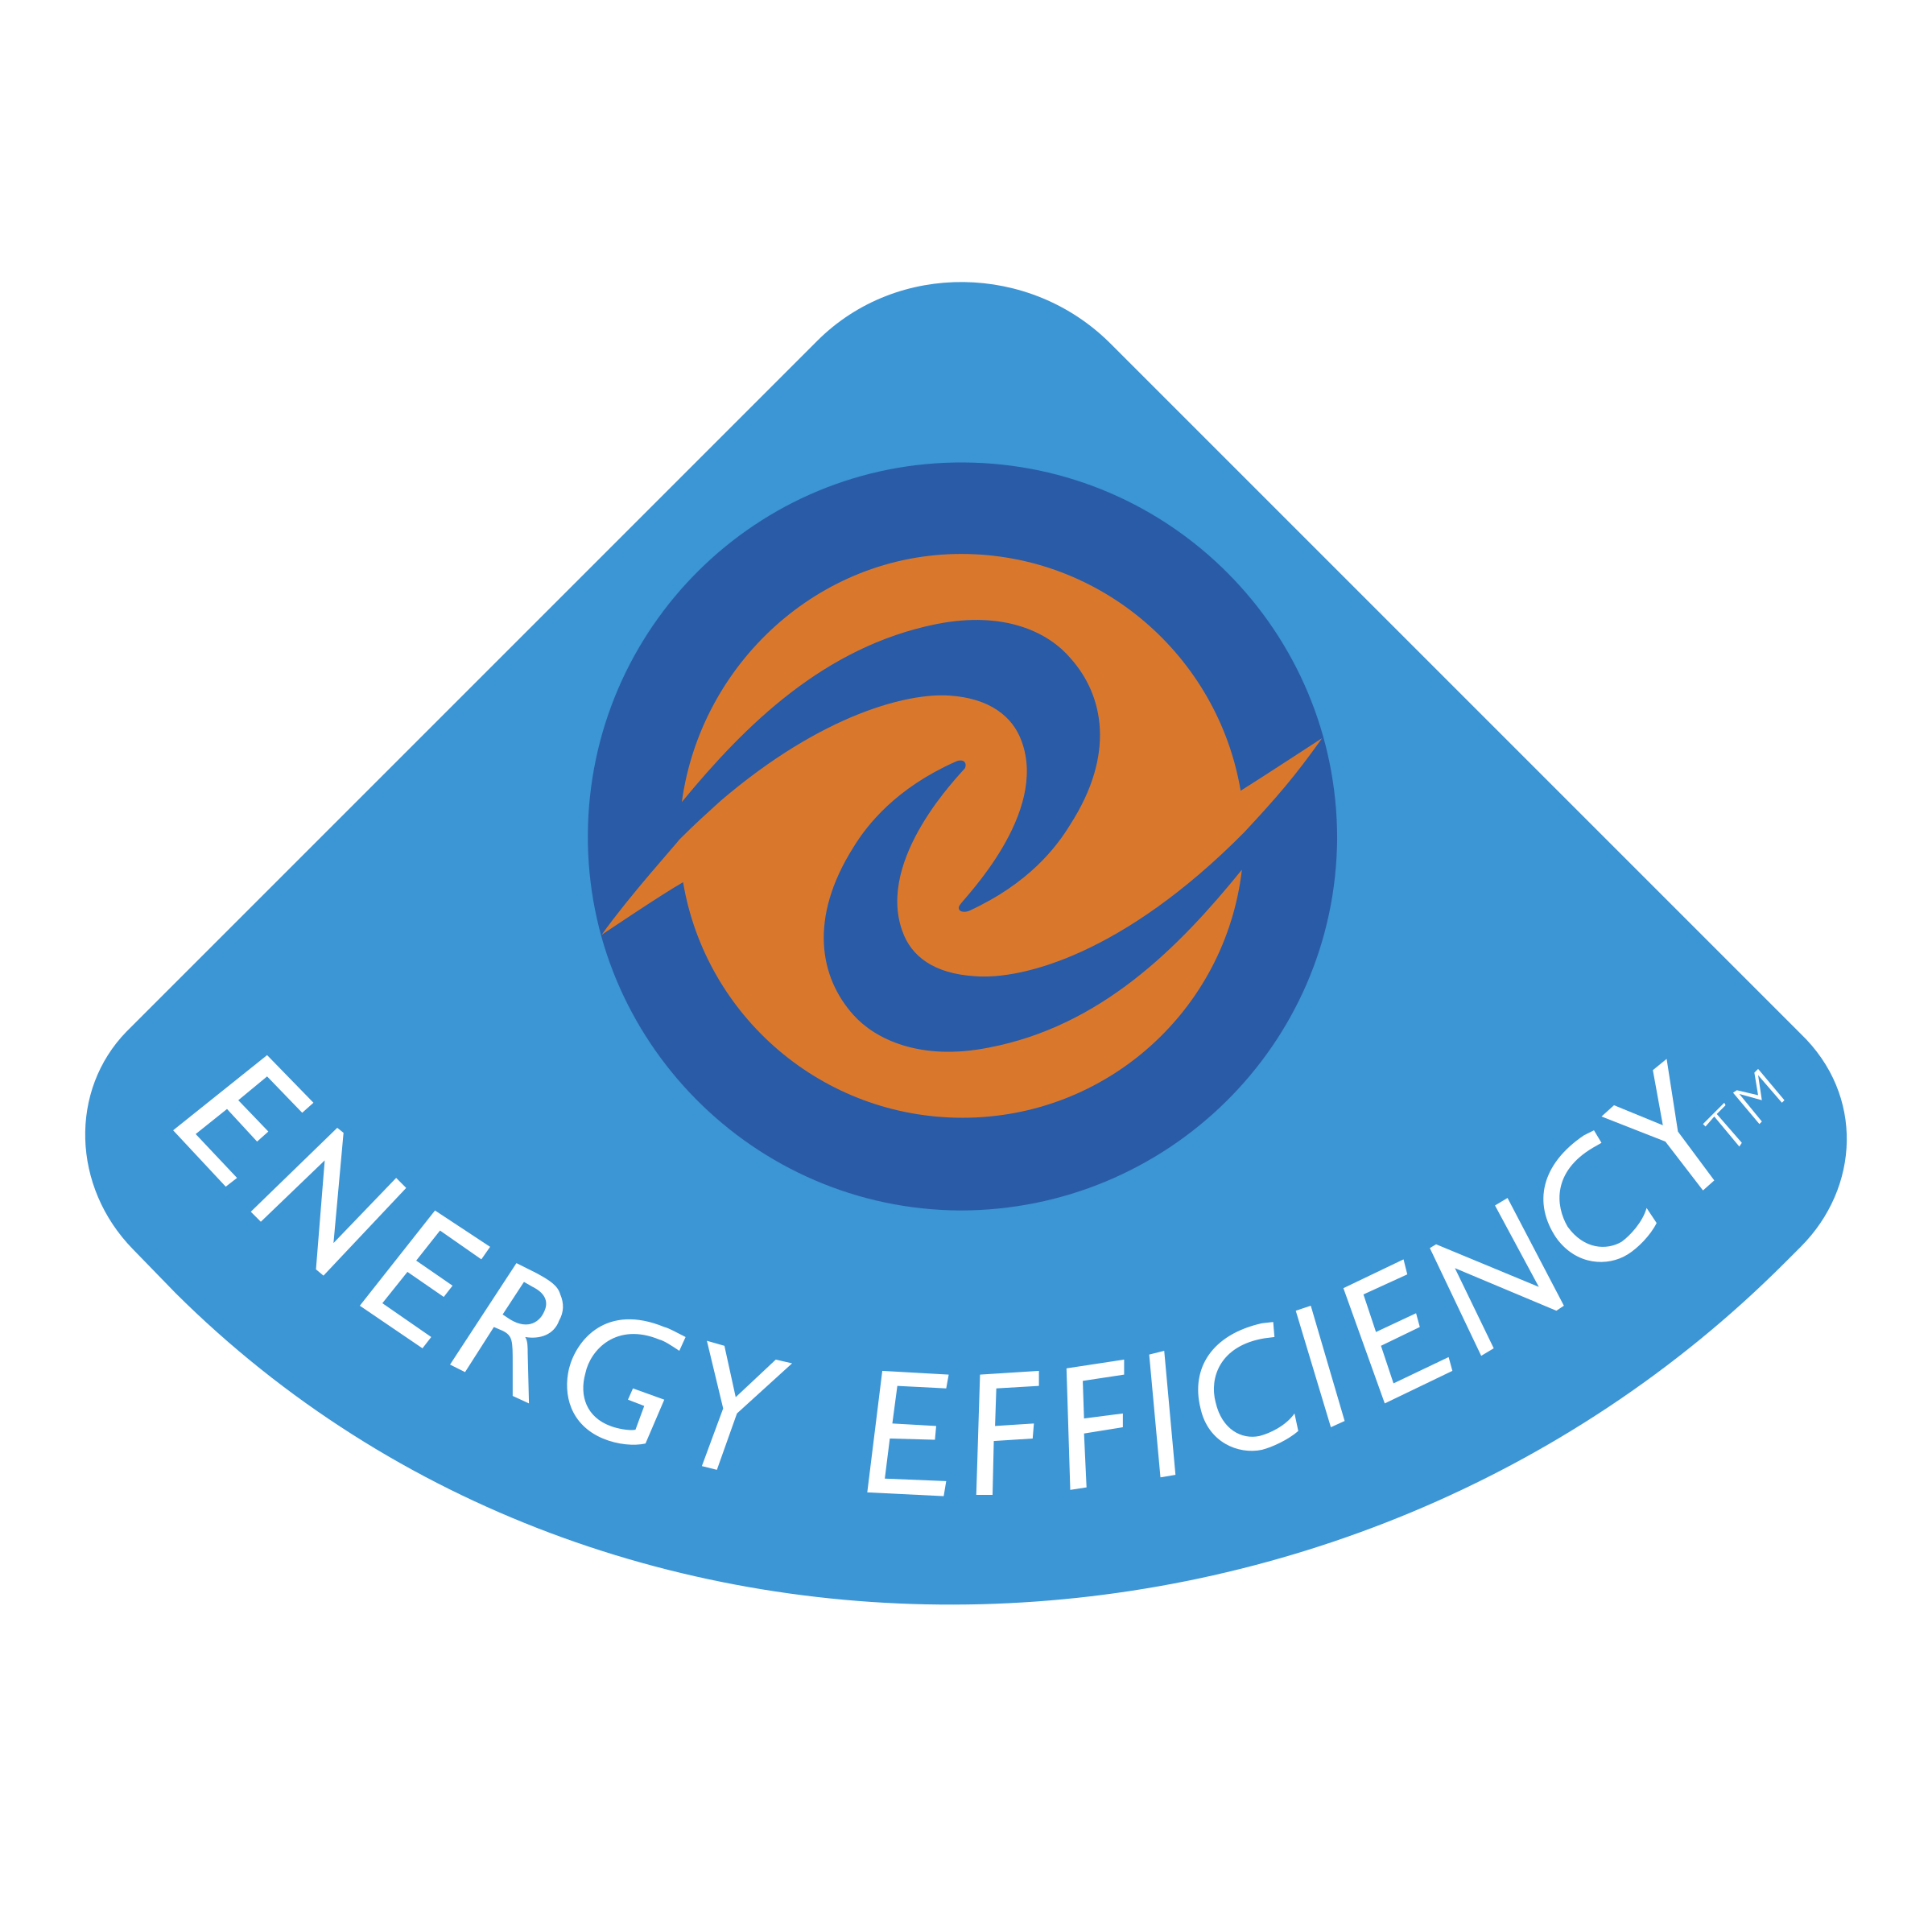 image Energy Efficiency Logo PNG Transparent